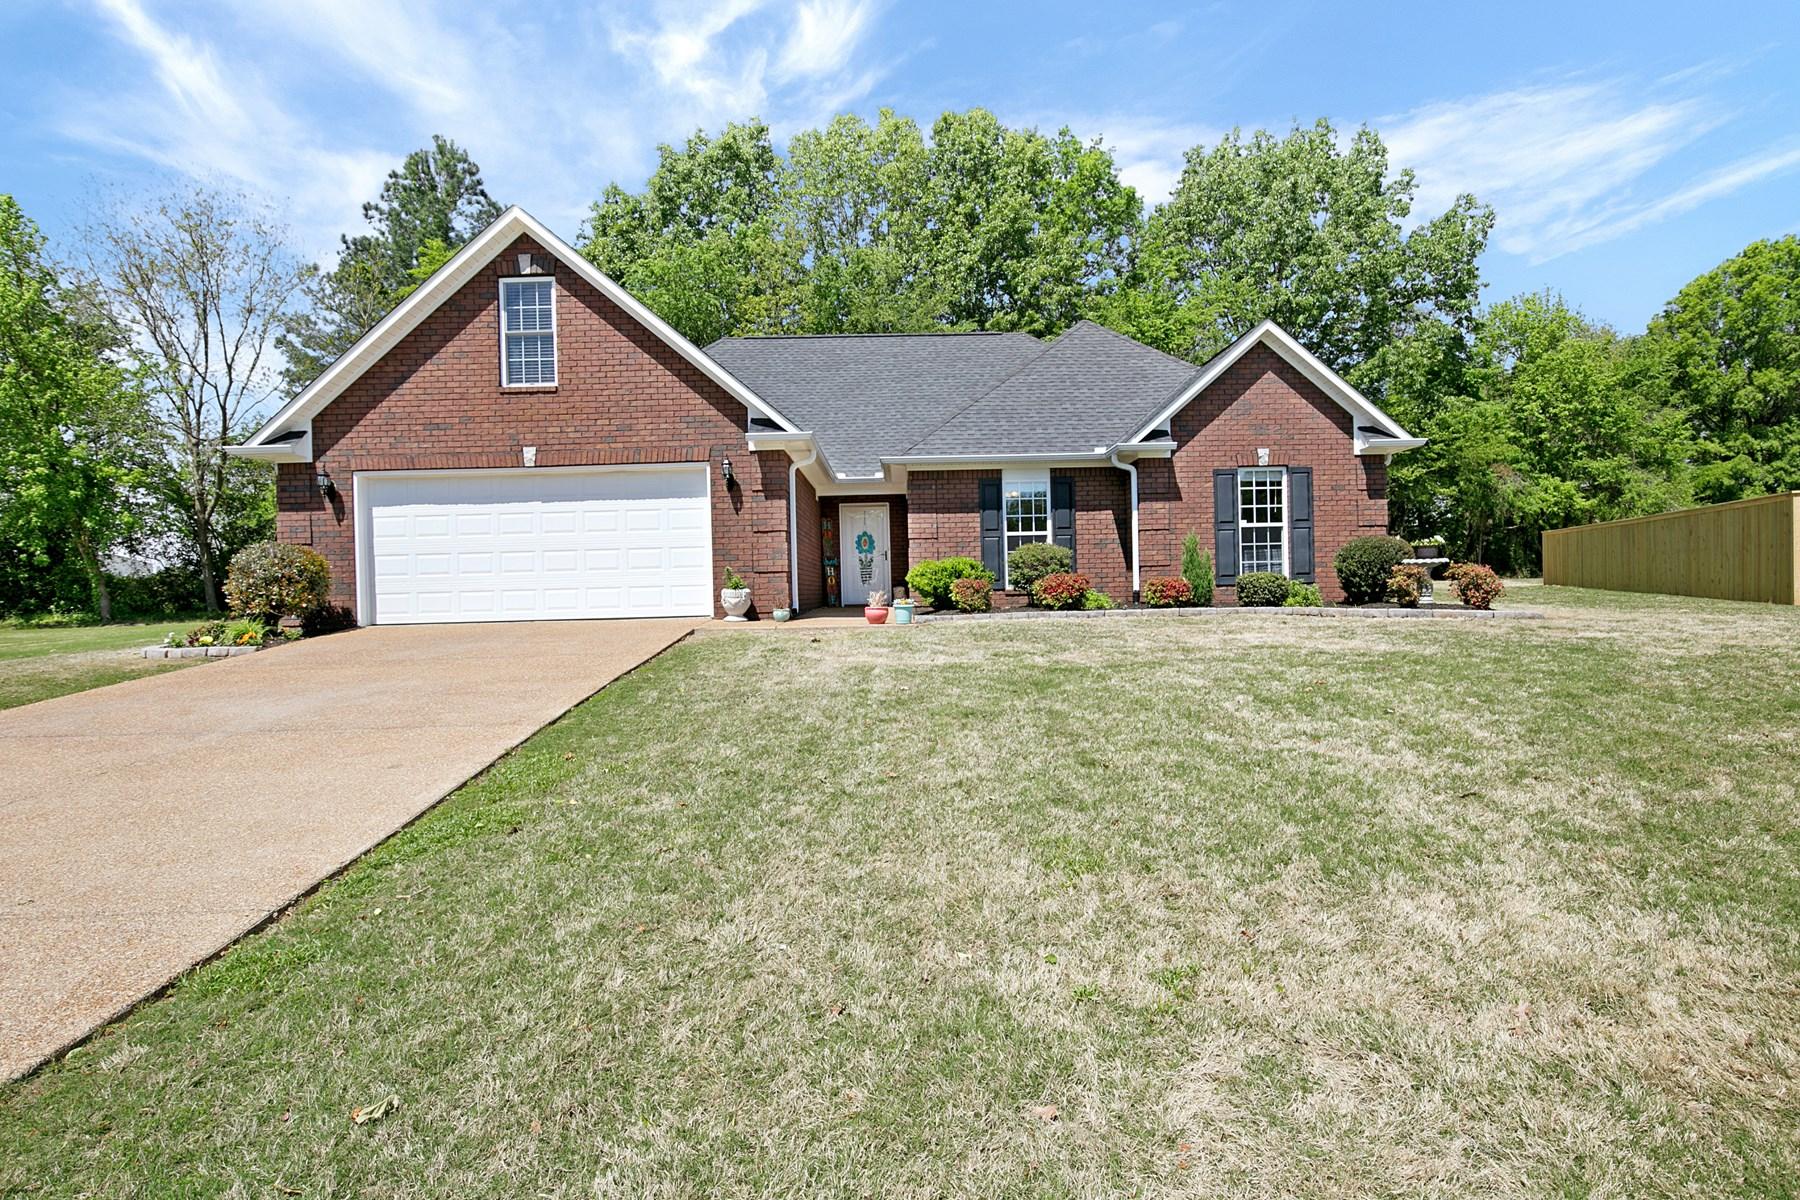 4 BR / 2 BA Brick Home For Sale Near Schools in Milan, TN